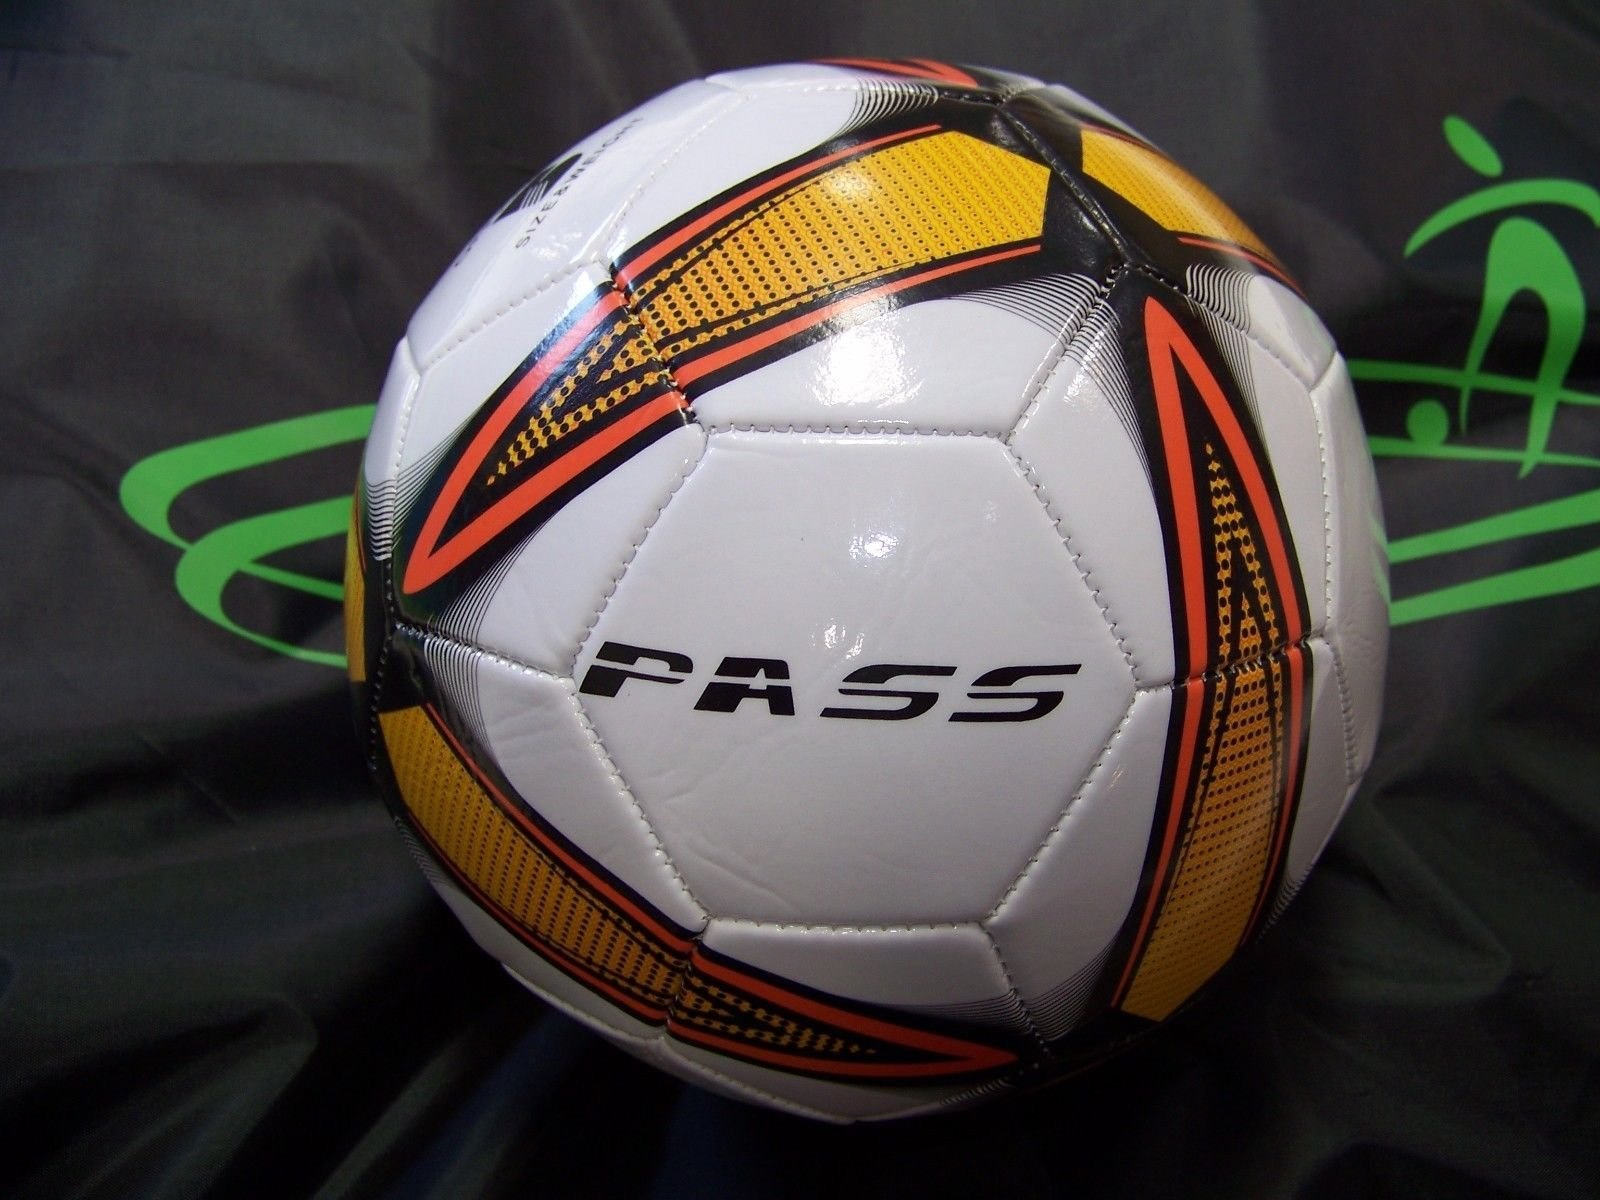 50 CT - Size 5, 32 Panel Machine Sewn Soccer Balls. Official Sizes & Weight. COMES WITH FREE 6'' PUMP! (Orange & Black)